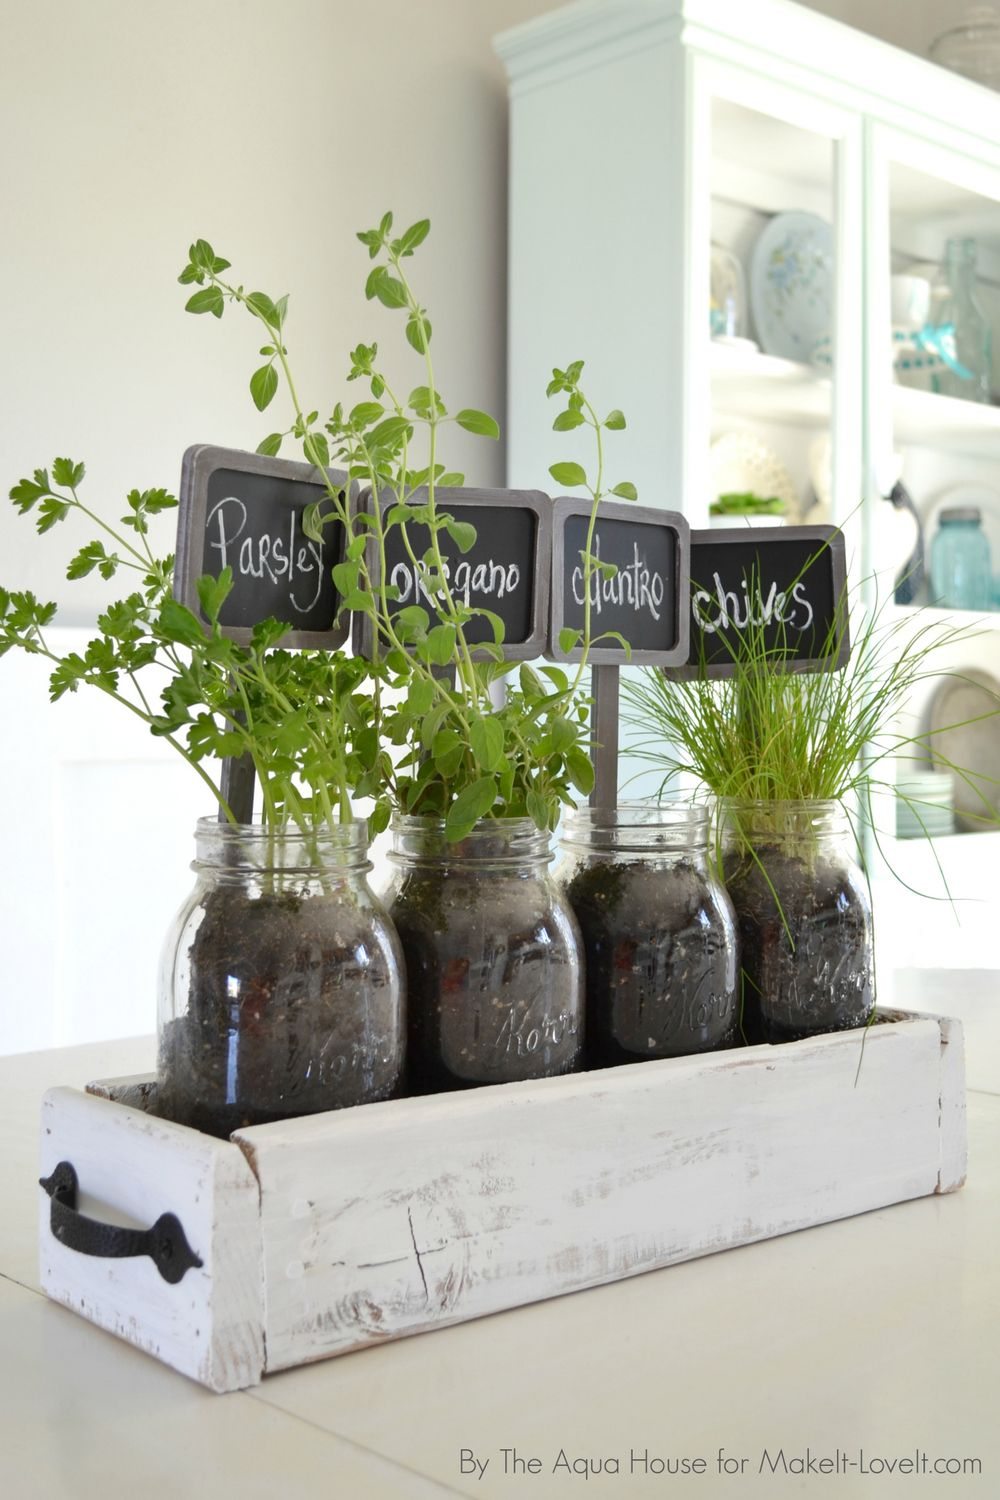 Diy Table Top Herb Garden From An Old Pallet Via Make It And Love